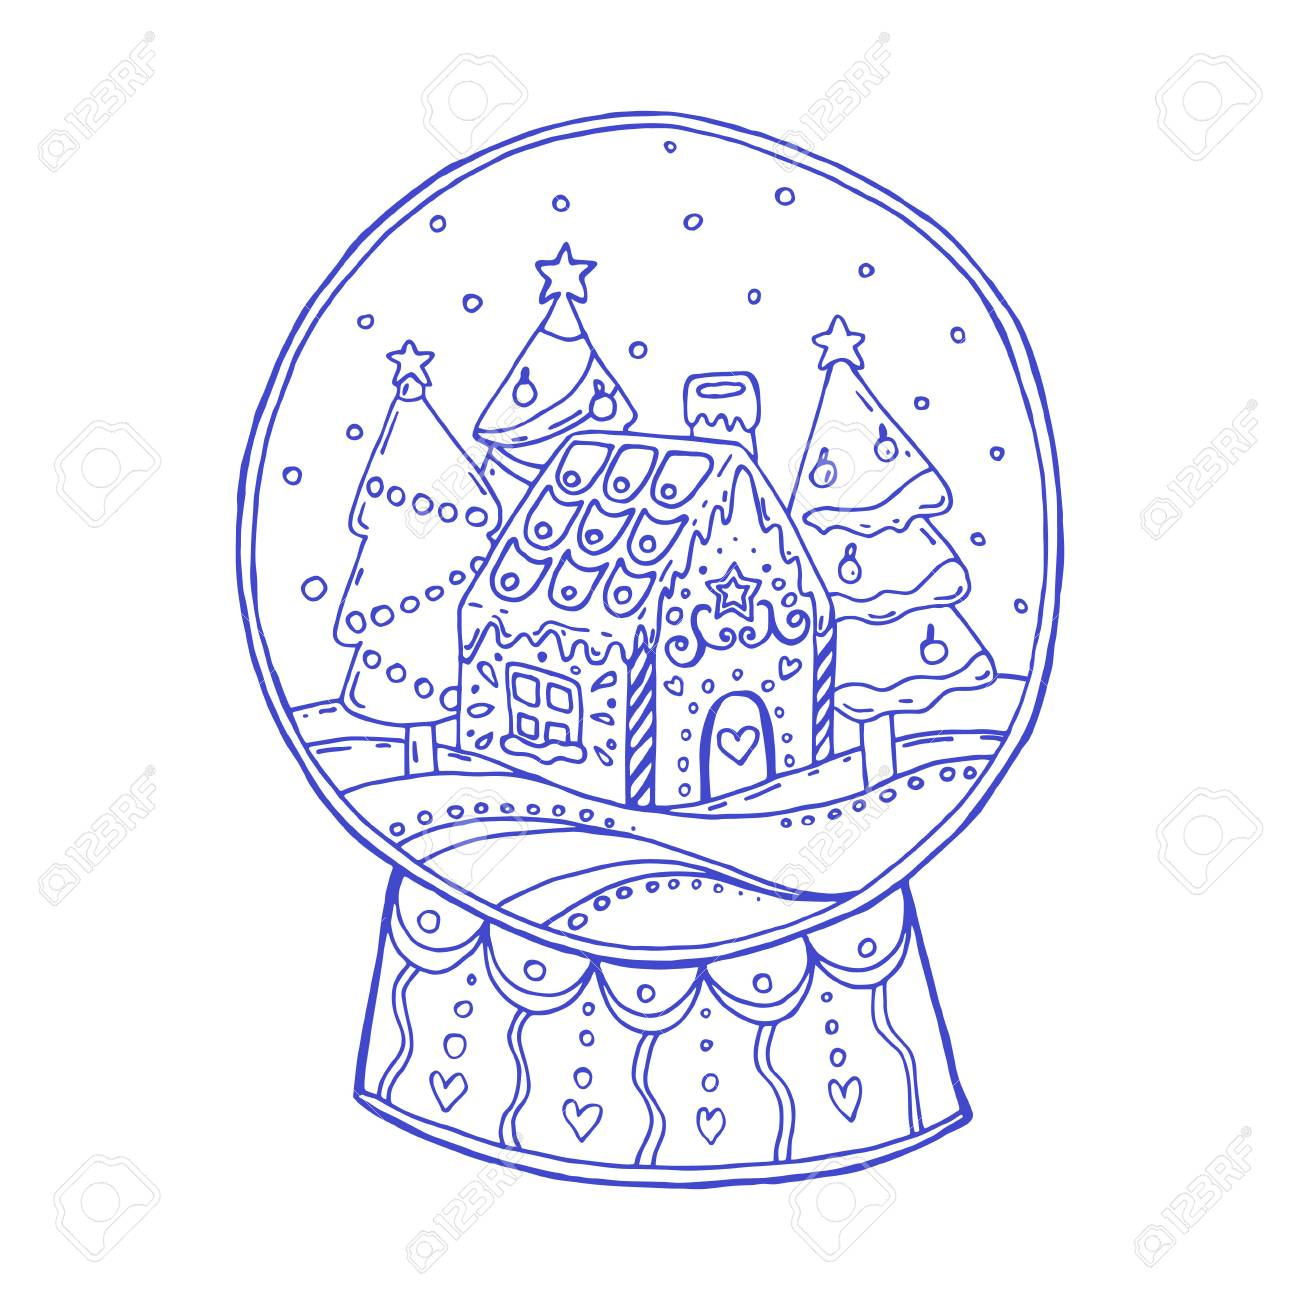 Christmas Gingerbread House Drawing.Snow Globe With Christmas Trees And Gingerbread House Inside